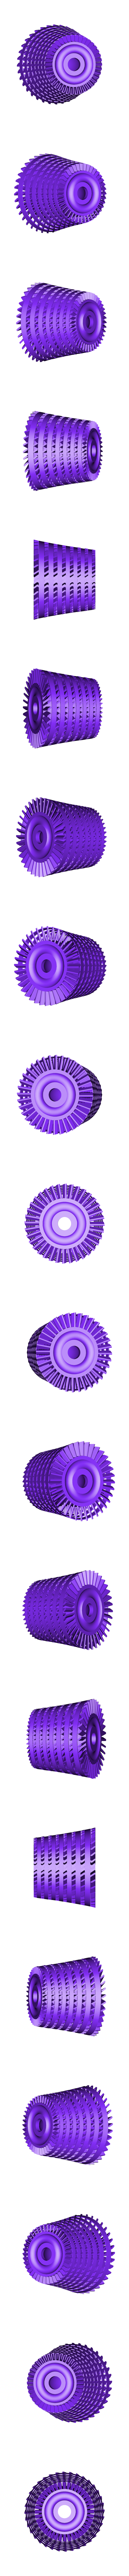 IPC-Rotor901ws.stl Download STL file Propfan Engine, Pusher Type using with Planetary Gearbox • 3D printer template, konchan77